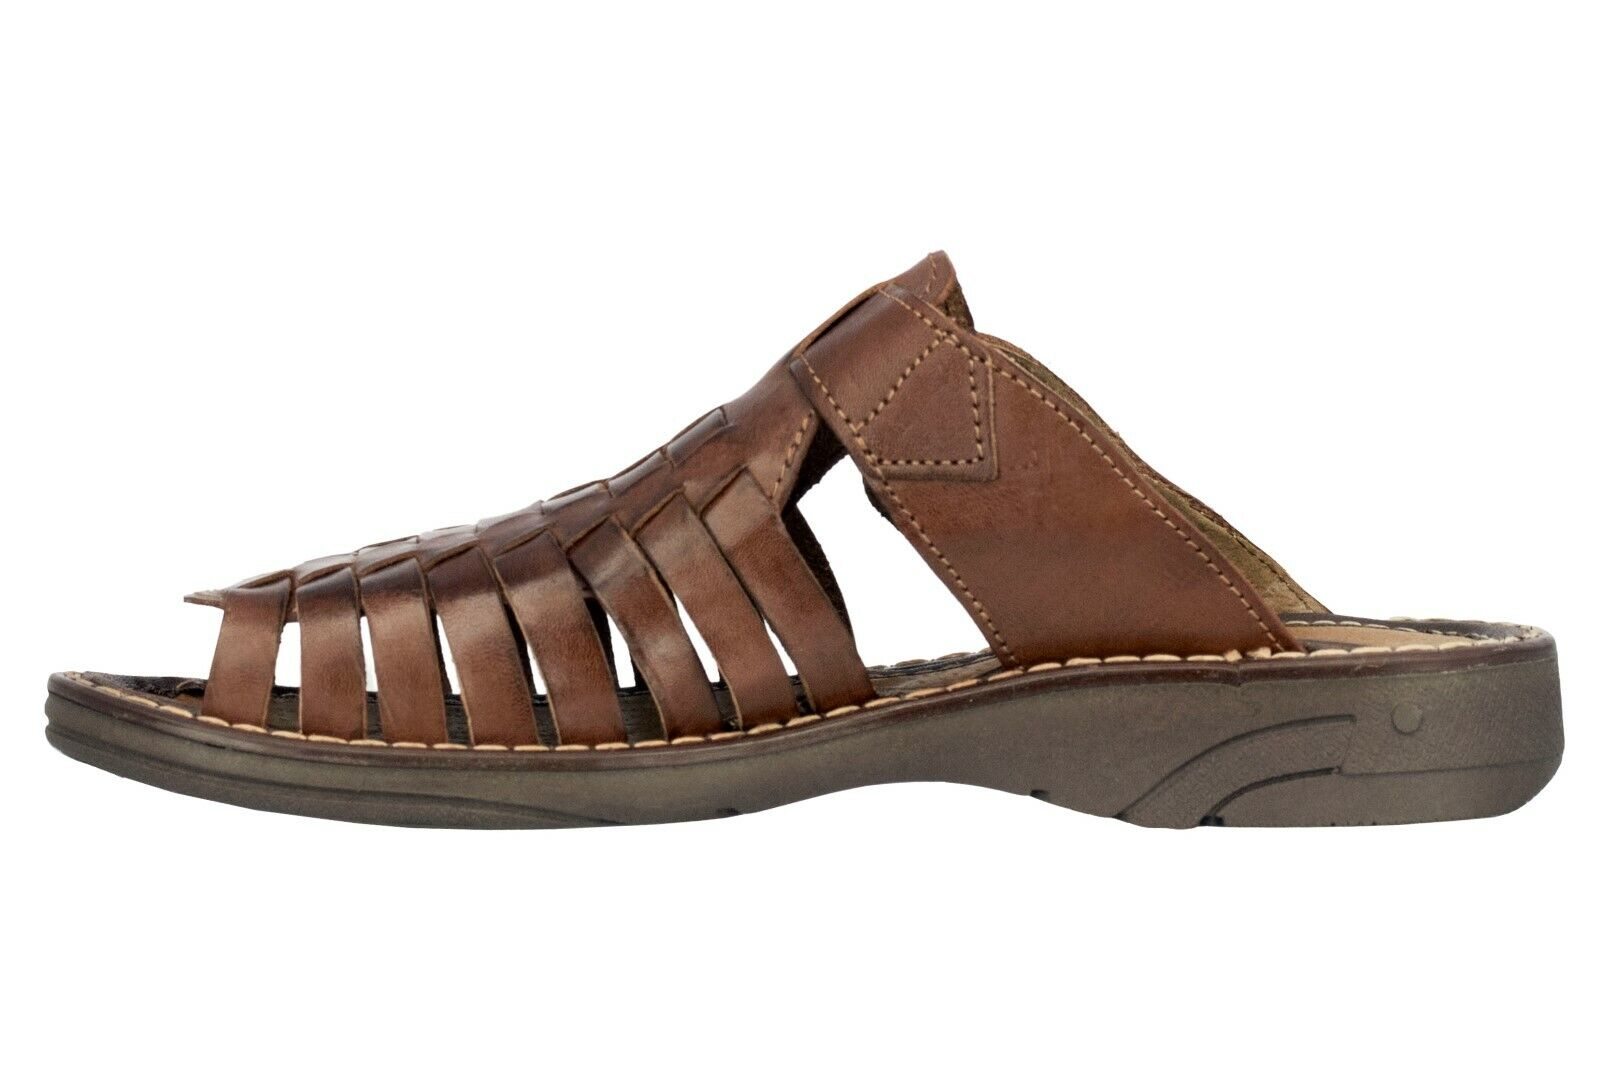 Mens Cognac Authentic Mexican Huaraches Sandals Genuine Woven Leather Slip On 1